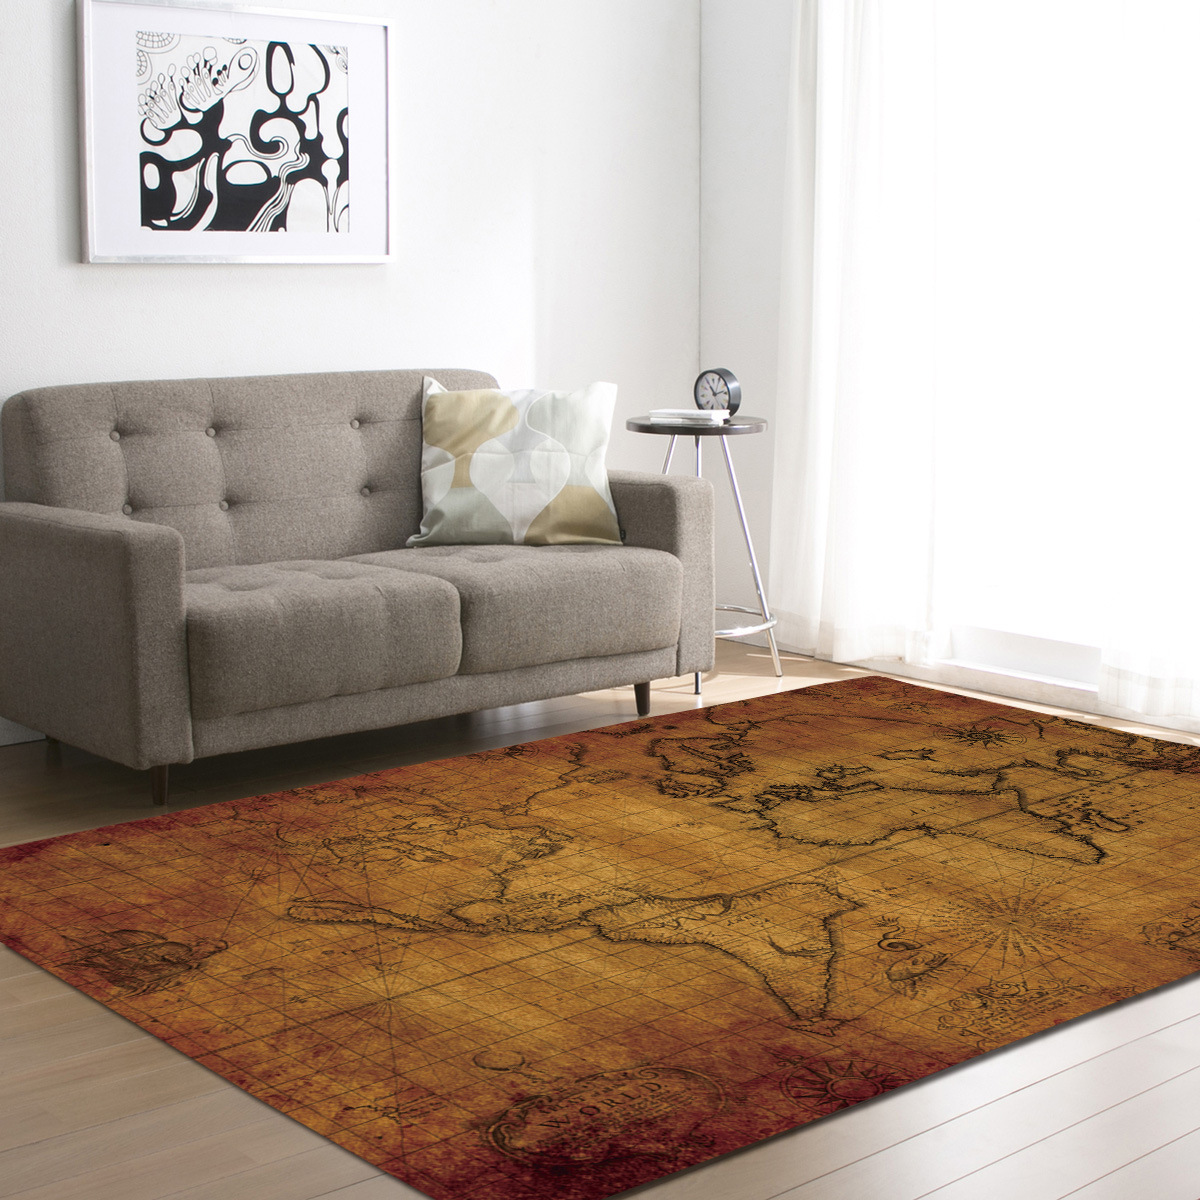 Zeegle World Map Carpets For Living Room Anti-slip Office Chair Floor Mats Bedroom Carpets Bedside Rugs Study Room Area Rug Zeegle World Map Carpets For Living Room Anti-slip Office Chair Floor Mats Bedroom Carpets Bedside Rugs Study Room Area Rug